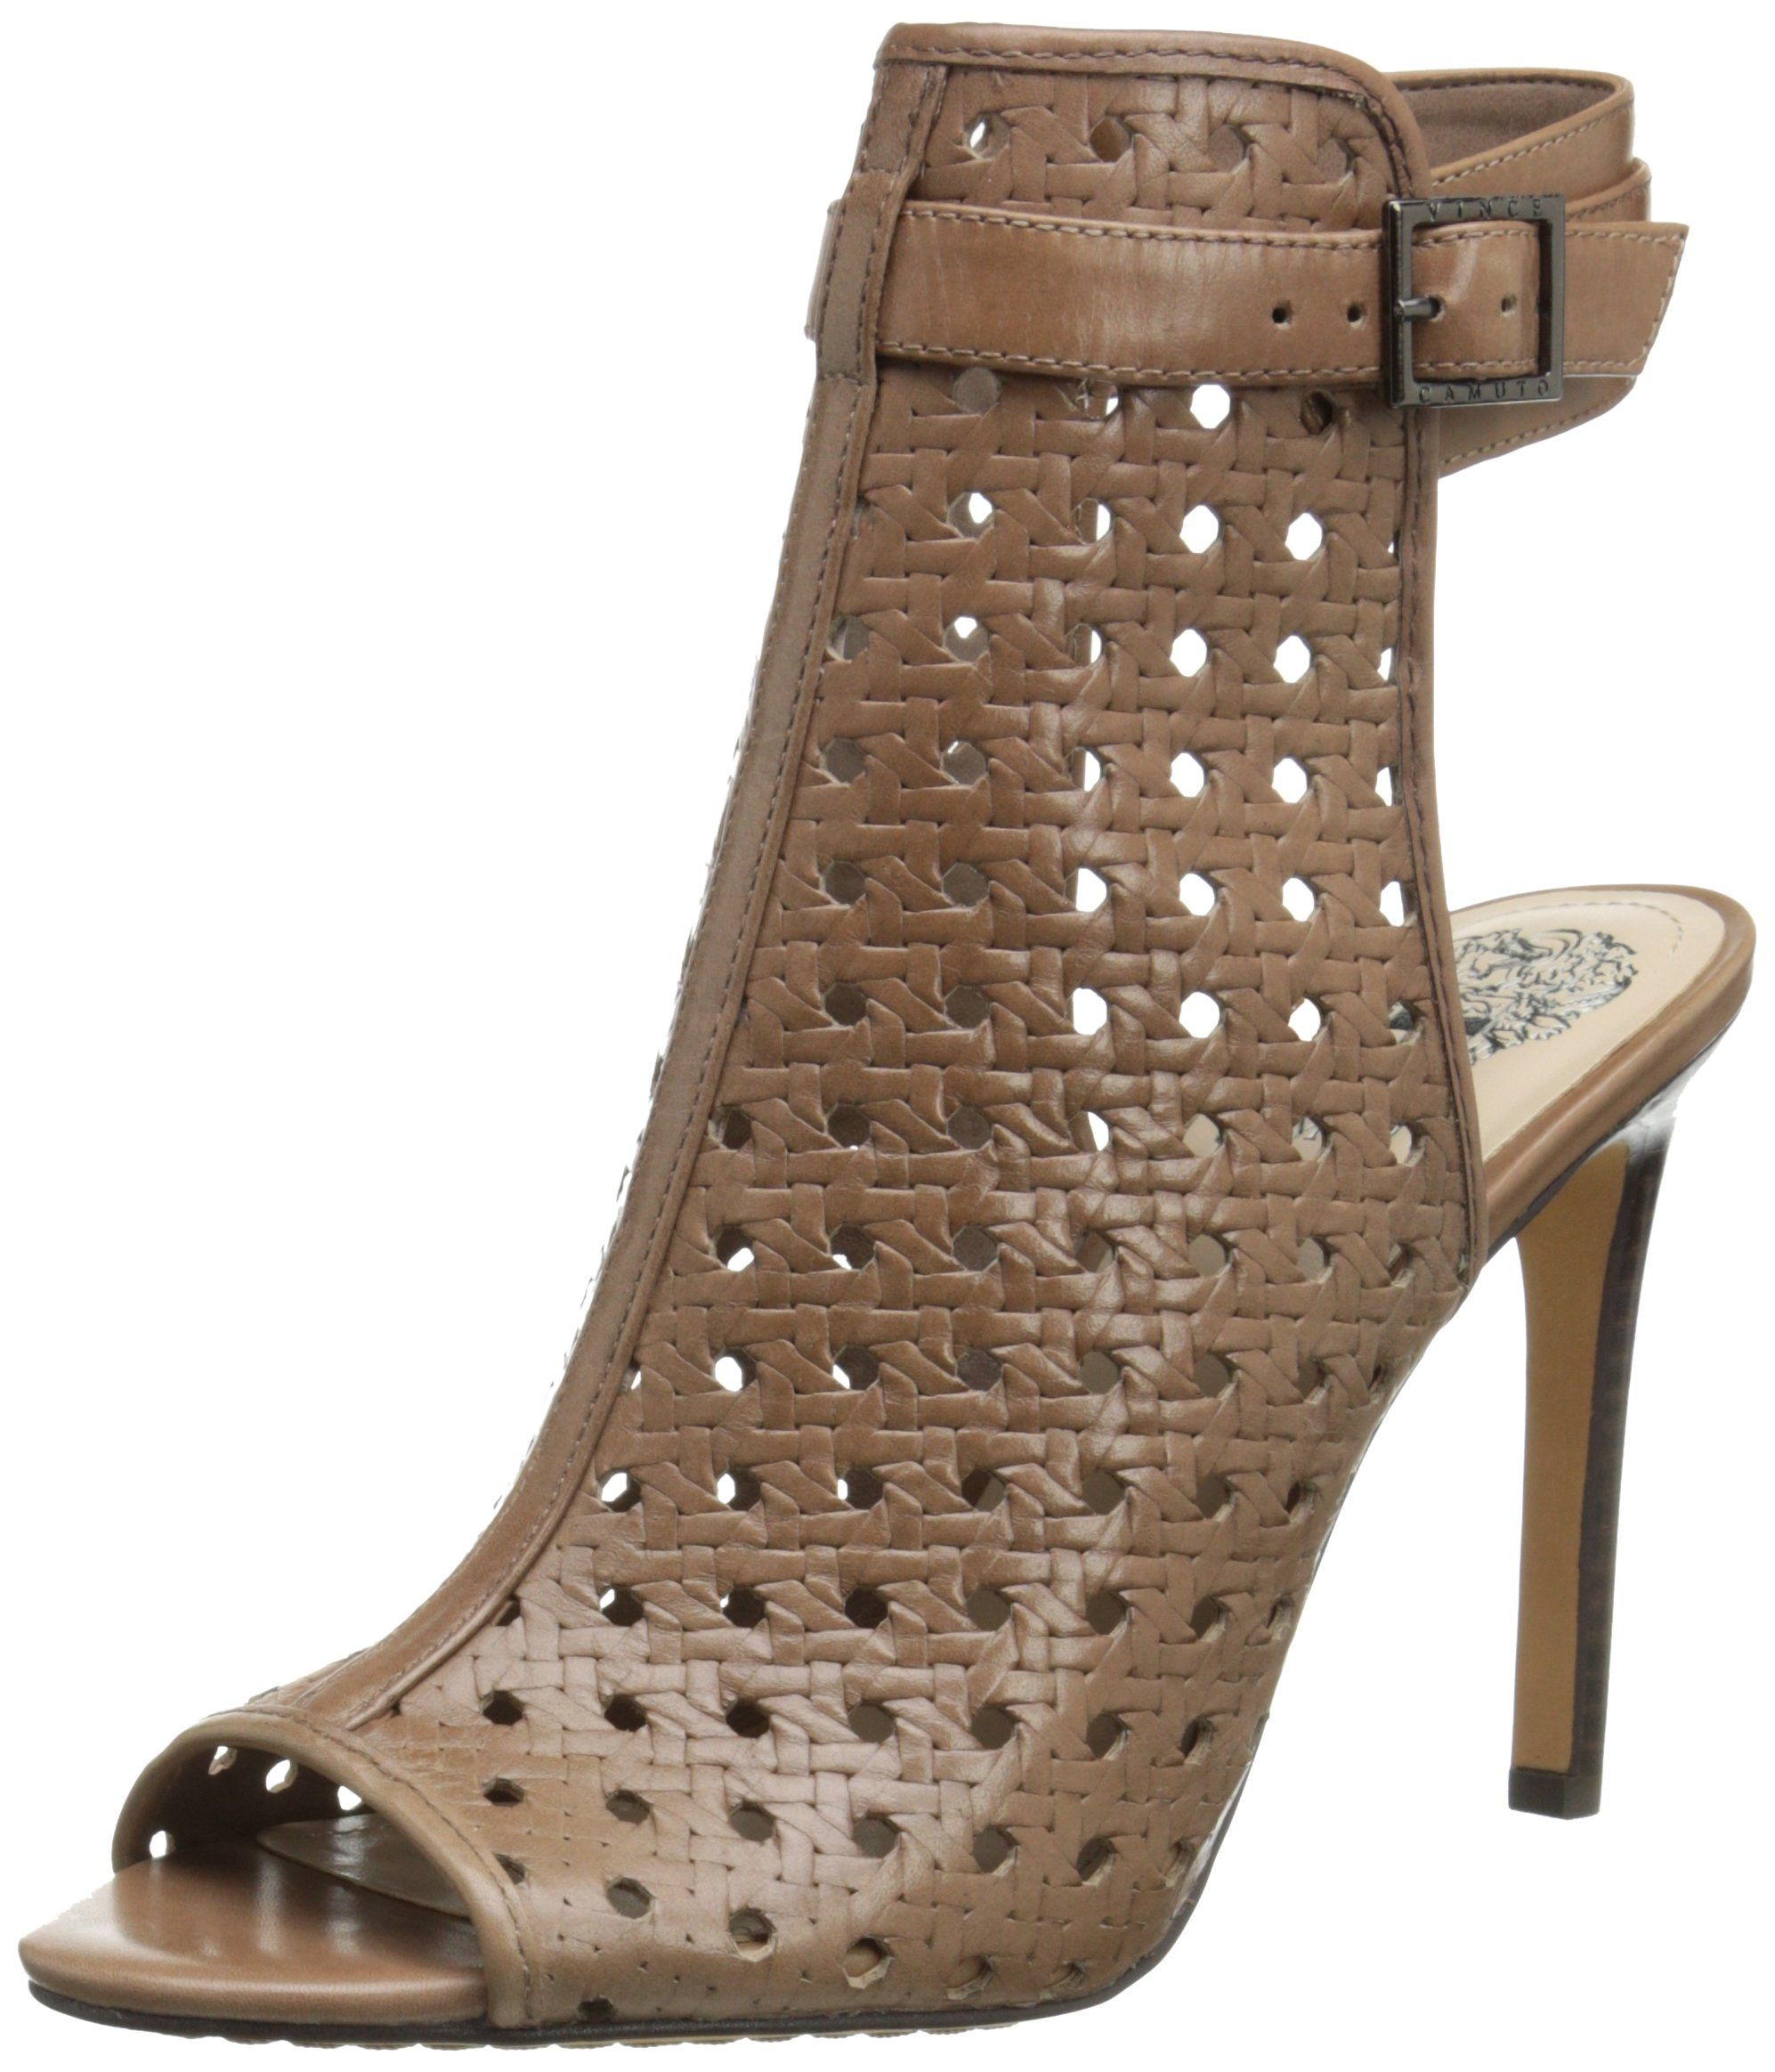 Amazon.com: Vince Camuto Women's Karsten Dress Sandal: Shoes